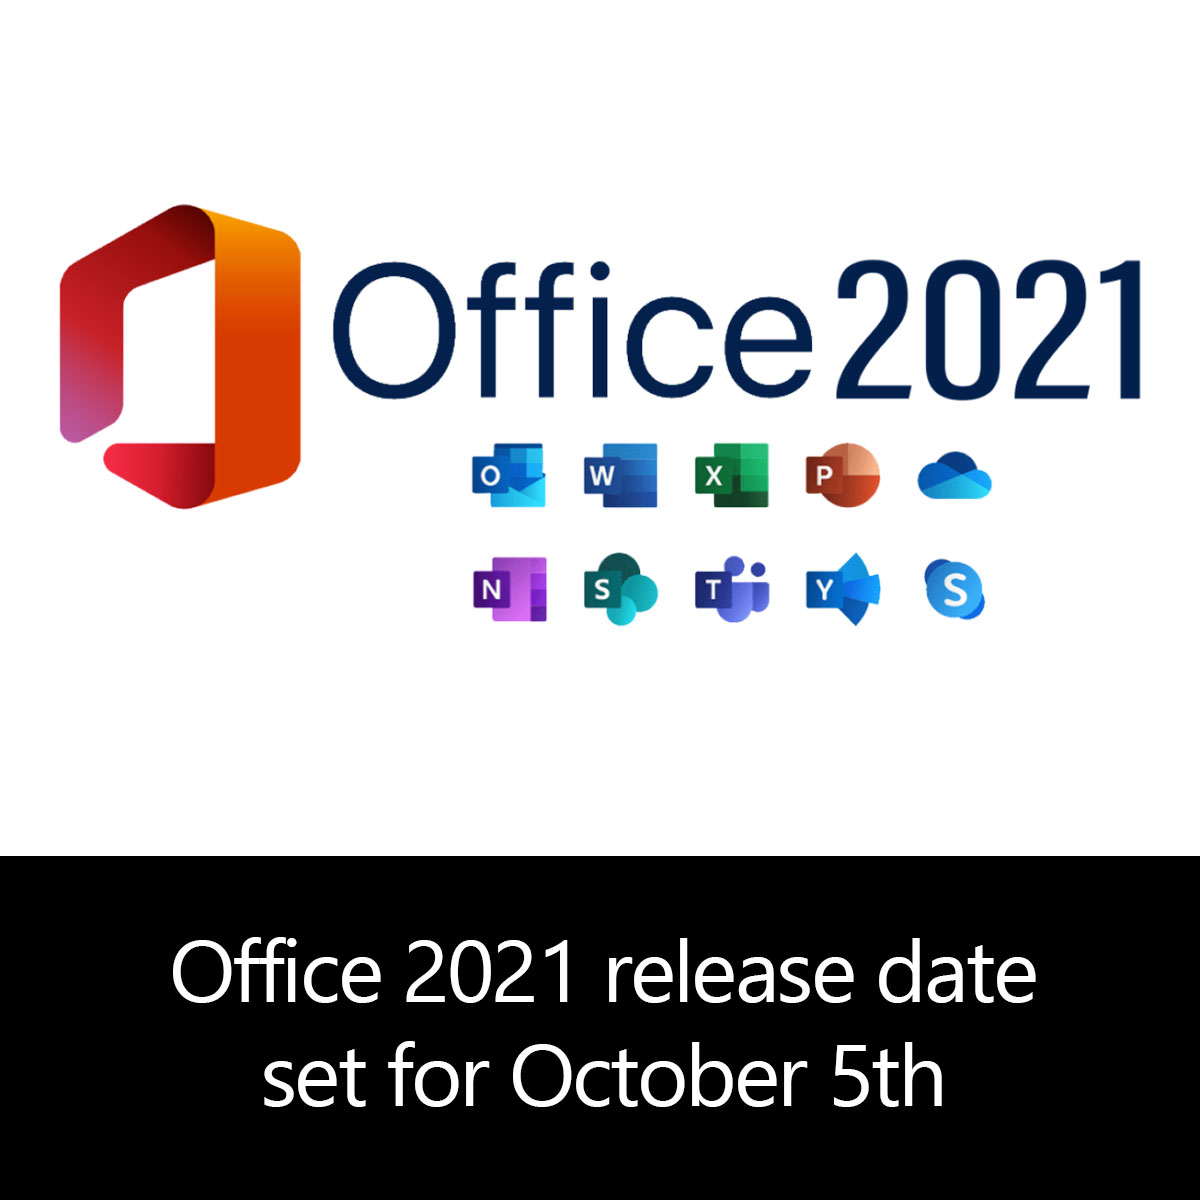 Office 2021 release date set for October 5th